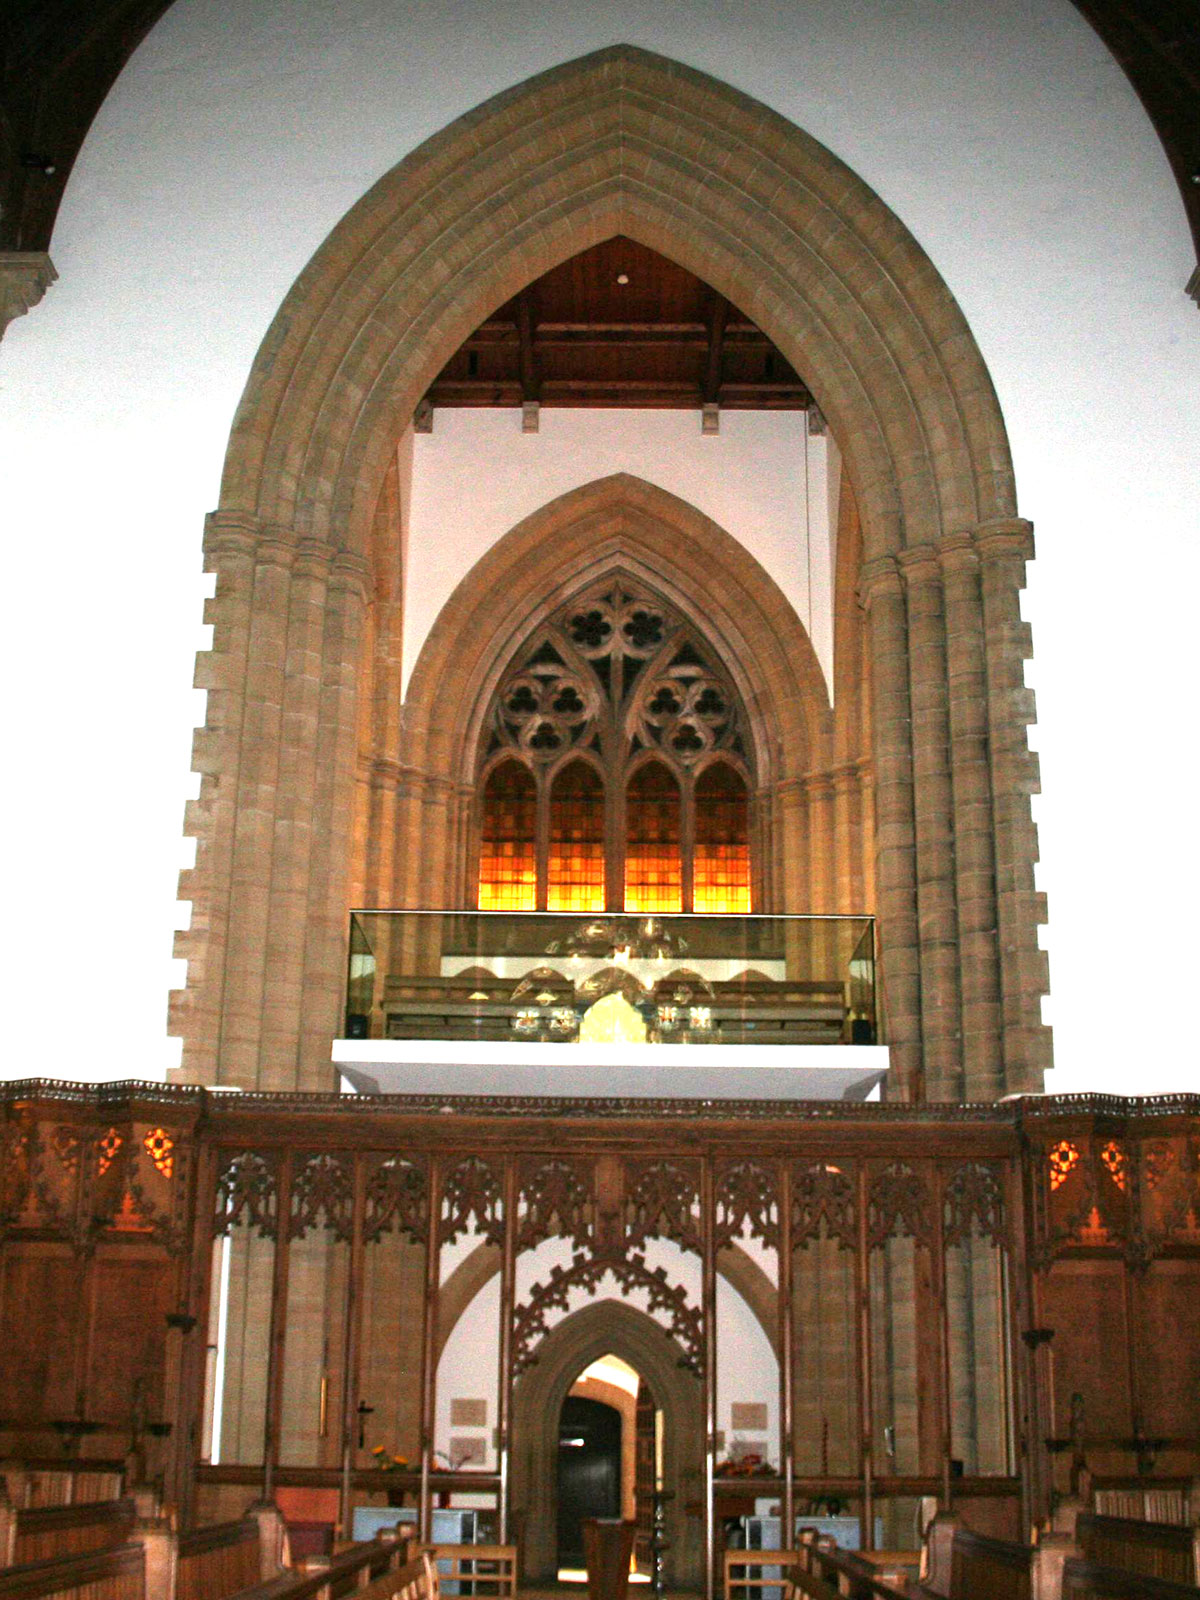 Bespoke Glass Balustrading to Suspended Gallery, Hurstpierpoint College Chapel